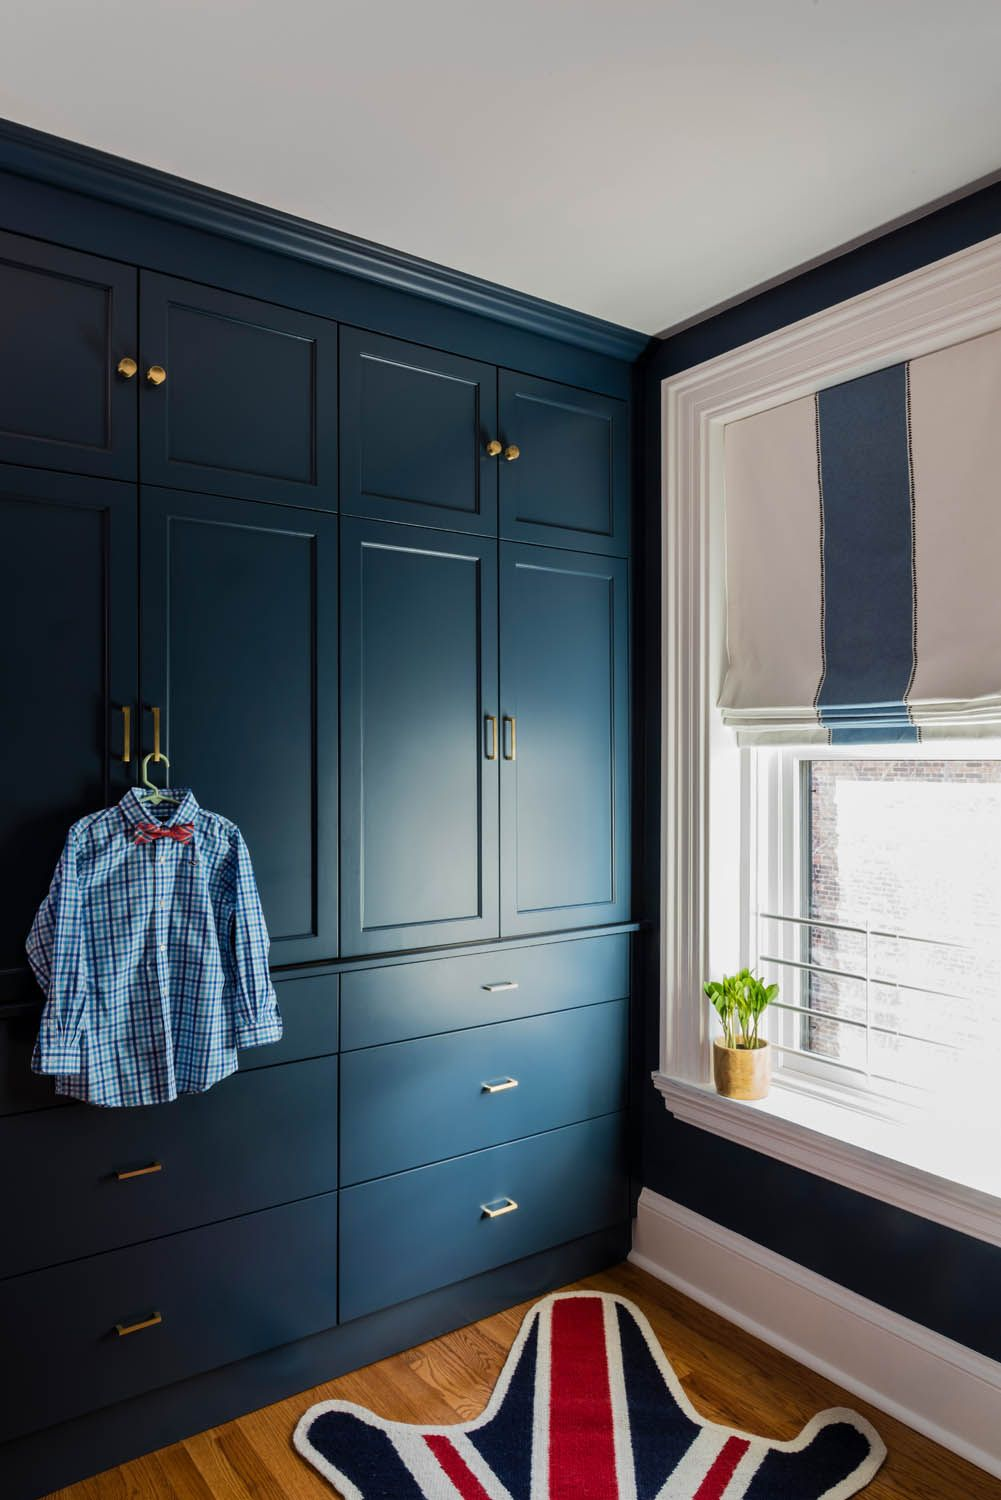 orig magazine projects back fbn credit j in closet shower closets boston design pantries residence lee glass featured special photo nicole michael wine hogarty allstate private bay construction